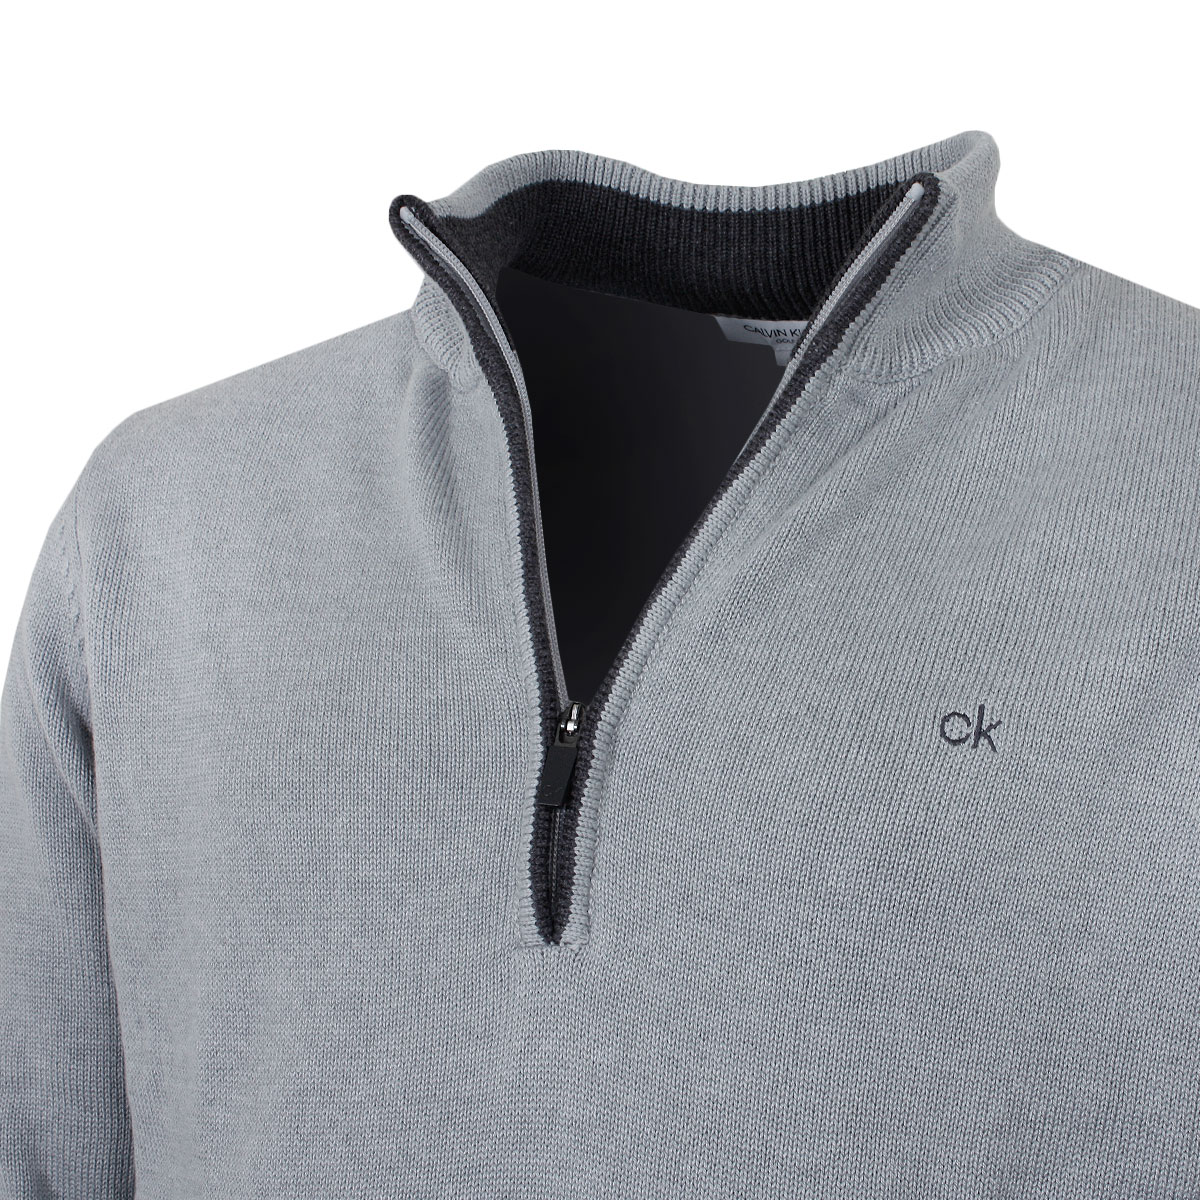 Calvin-Klein-Golf-Mens-2019-Chunky-Cotton-1-2-Zip-Golf-Top-Sweater-28-OFF-RRP thumbnail 51